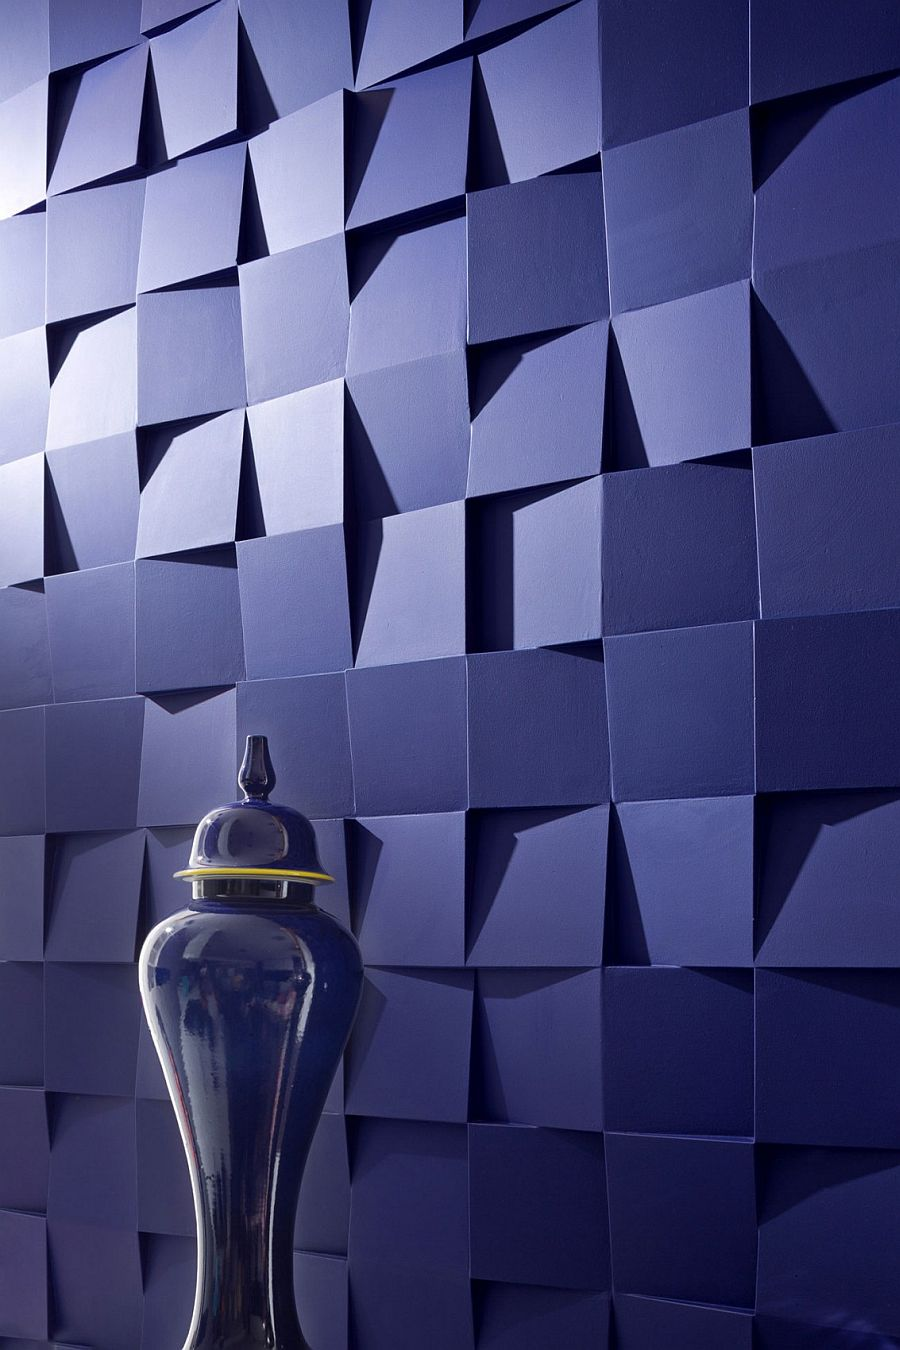 Bespoke 3D wall panels designed by Sergey Makhno steal the show inside this small Kiev apartment